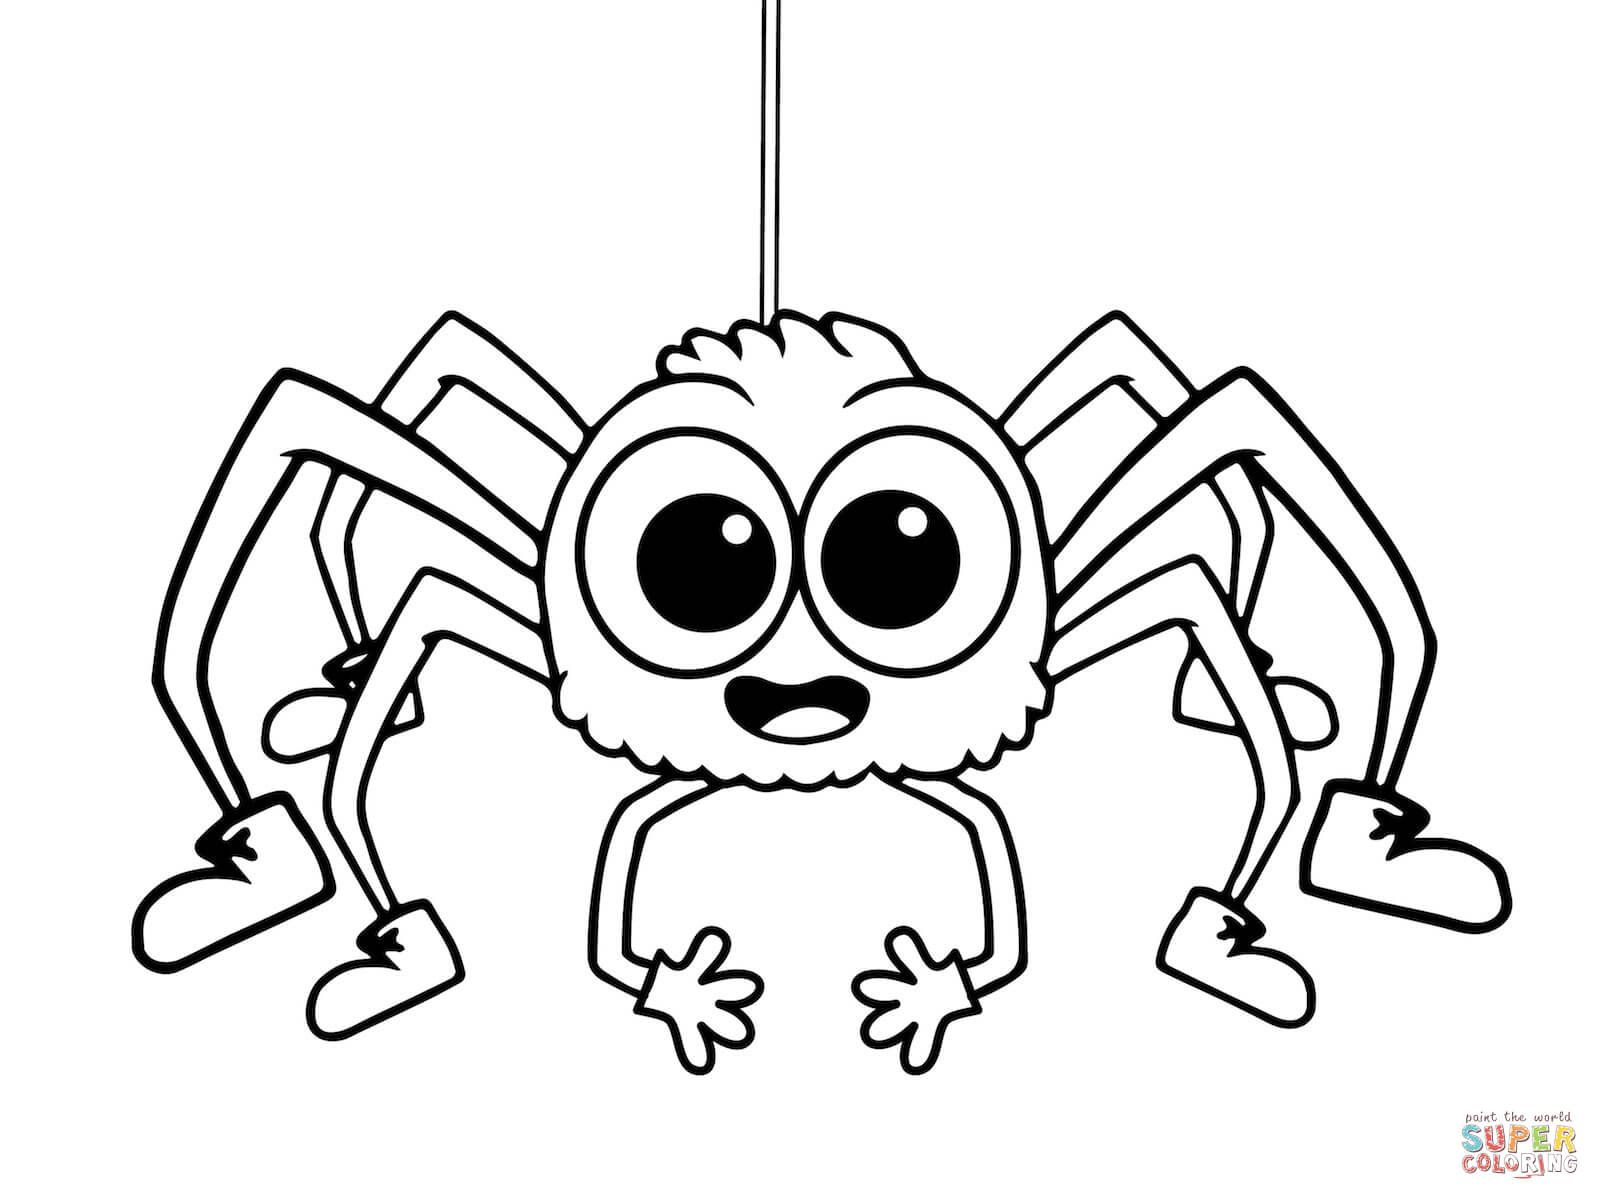 Incy Wincy Spider Coloring Page From Itsy Bitsy Spider Category